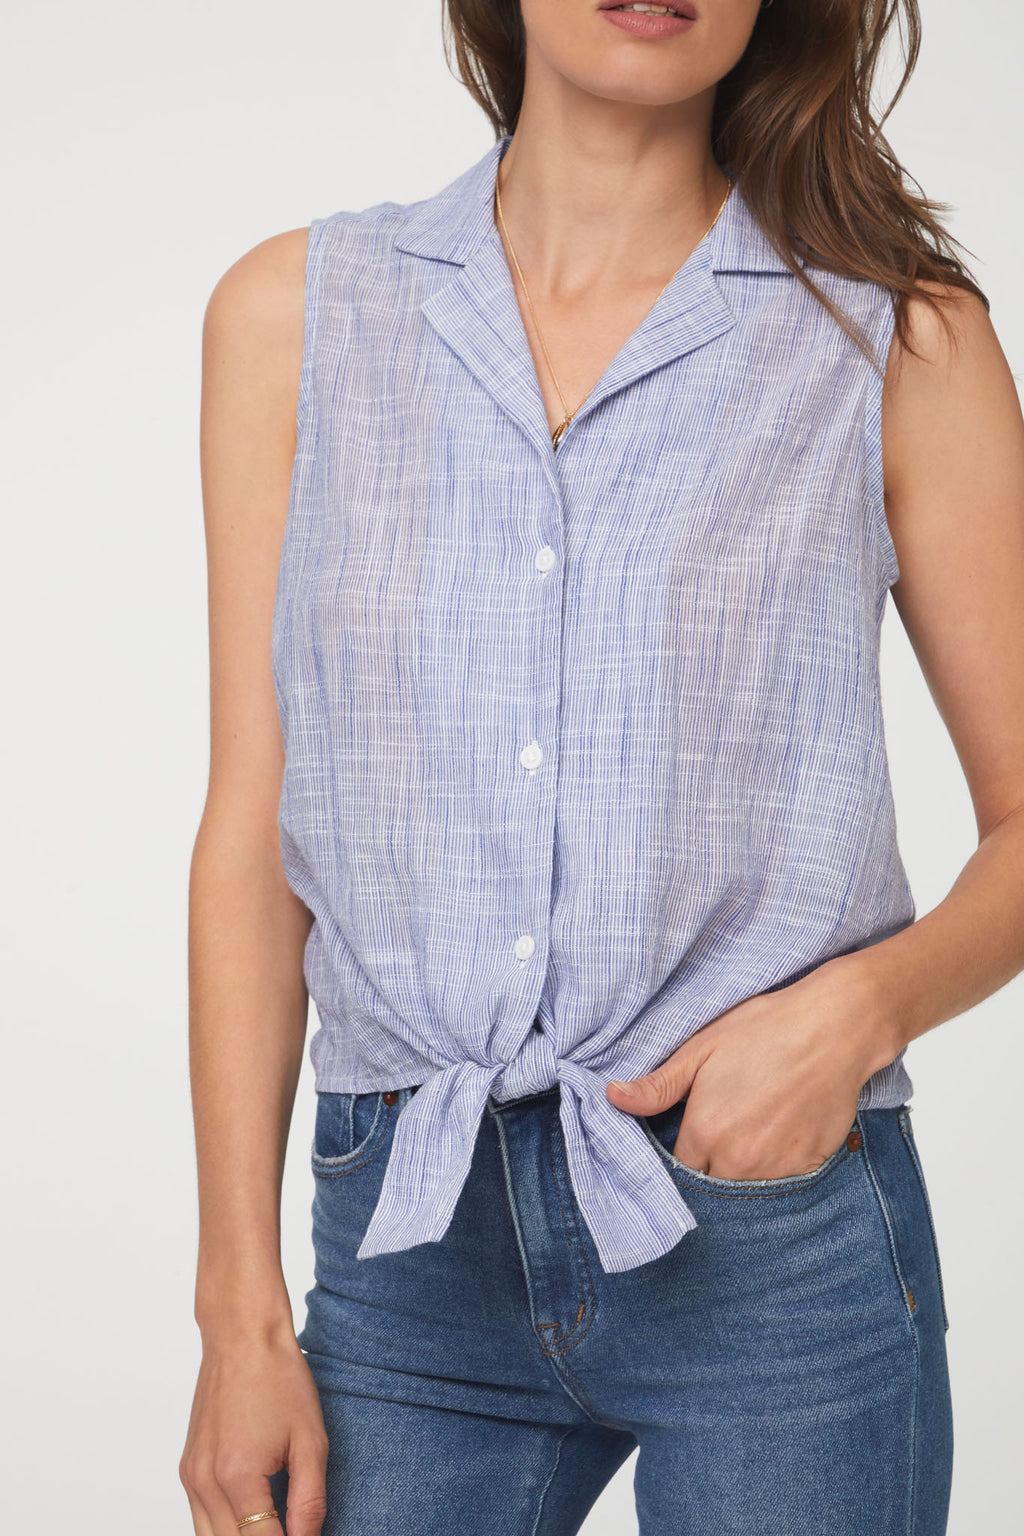 POPPY SHIRT - BLUE QUILT